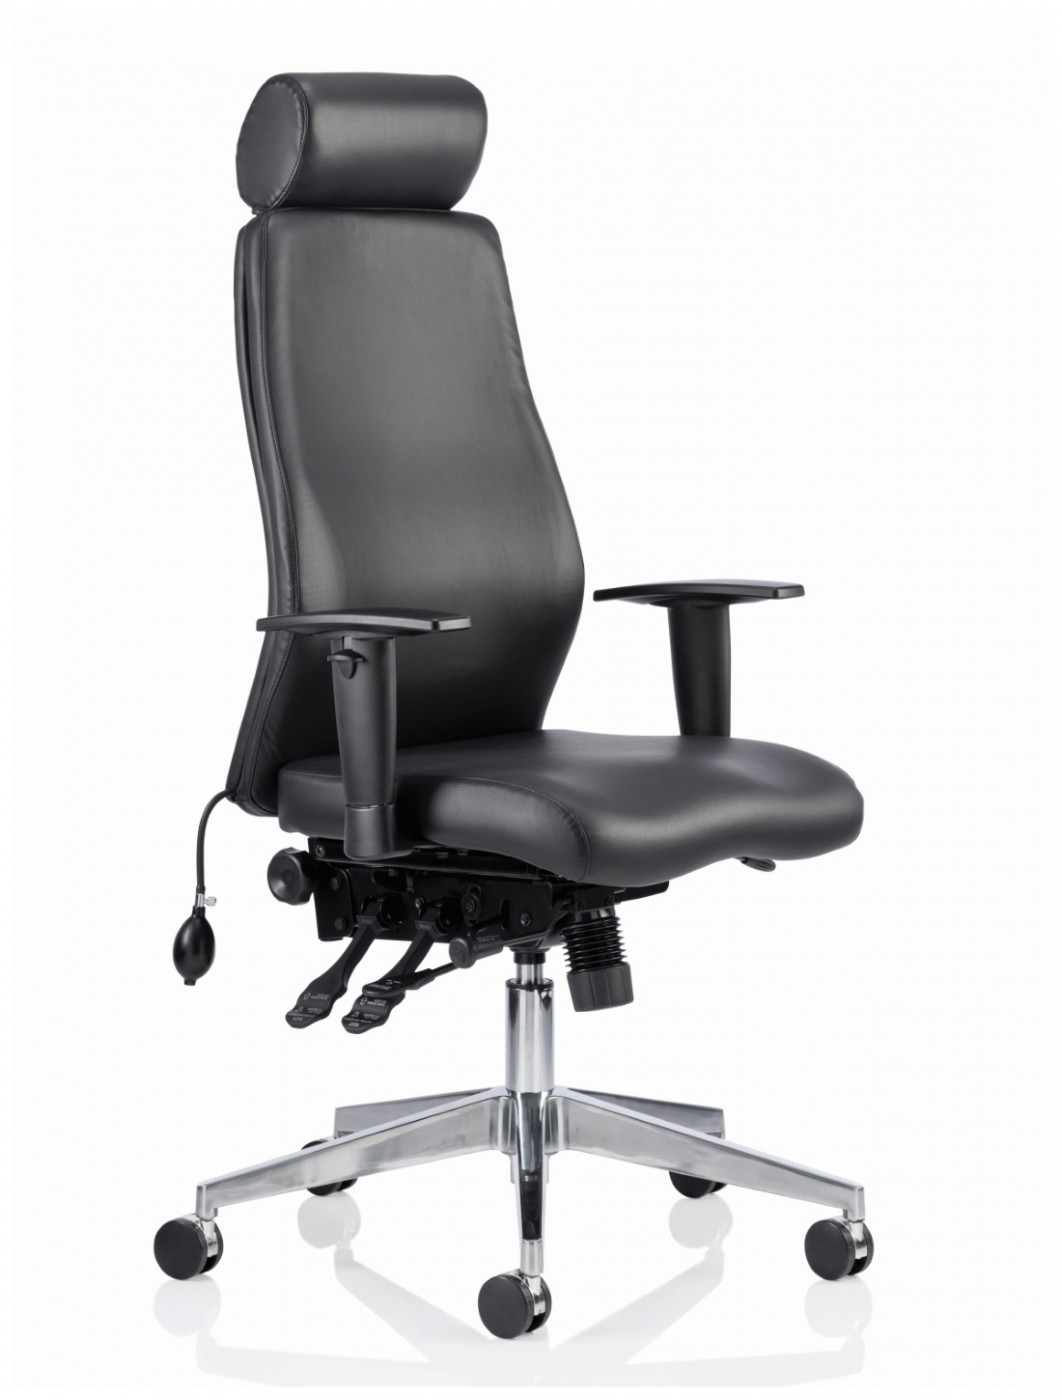 Dynamic Onyx Leather Office Chair With Headrest Op000098 121 Office Furniture